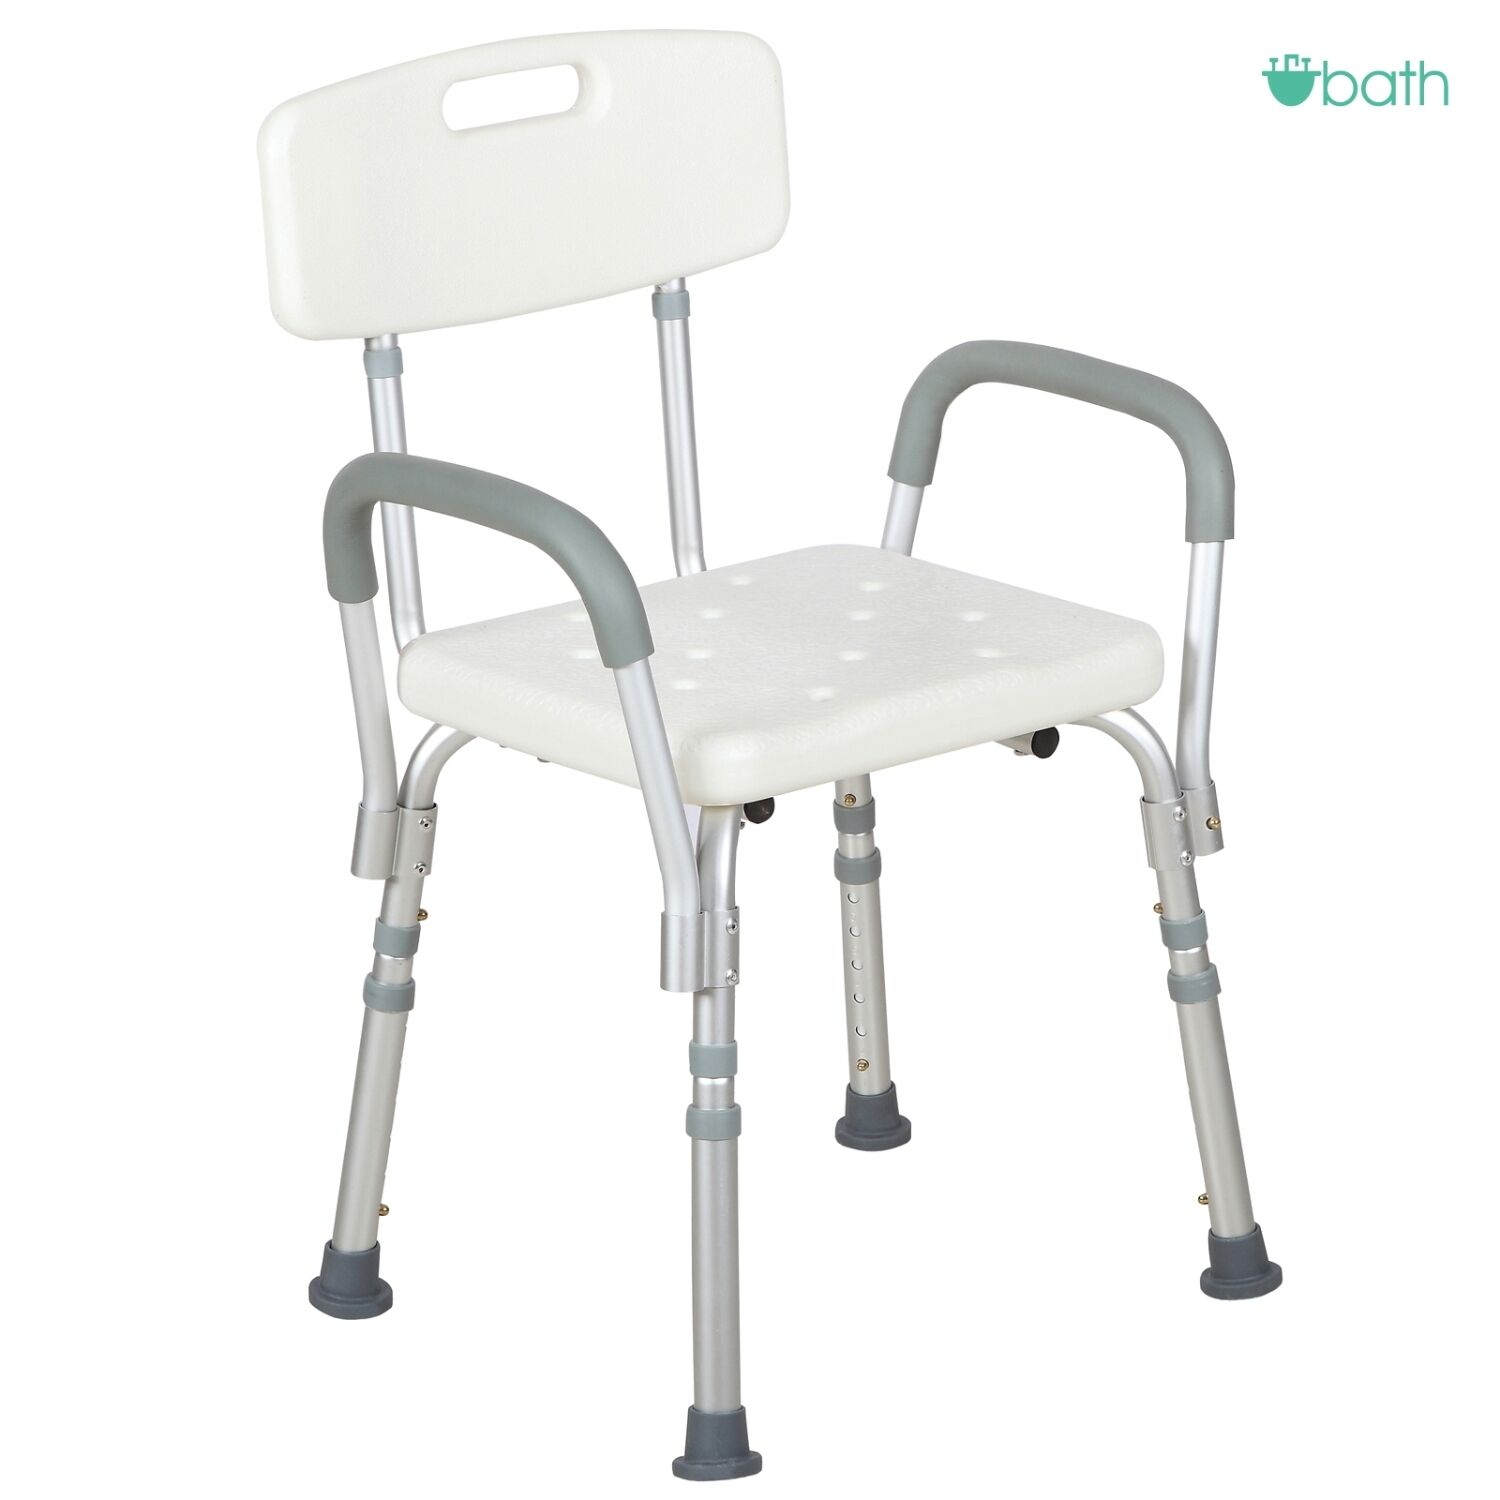 White Medical Bath Shower Chair Adjustable Bathtub Bench Stool Seat ...